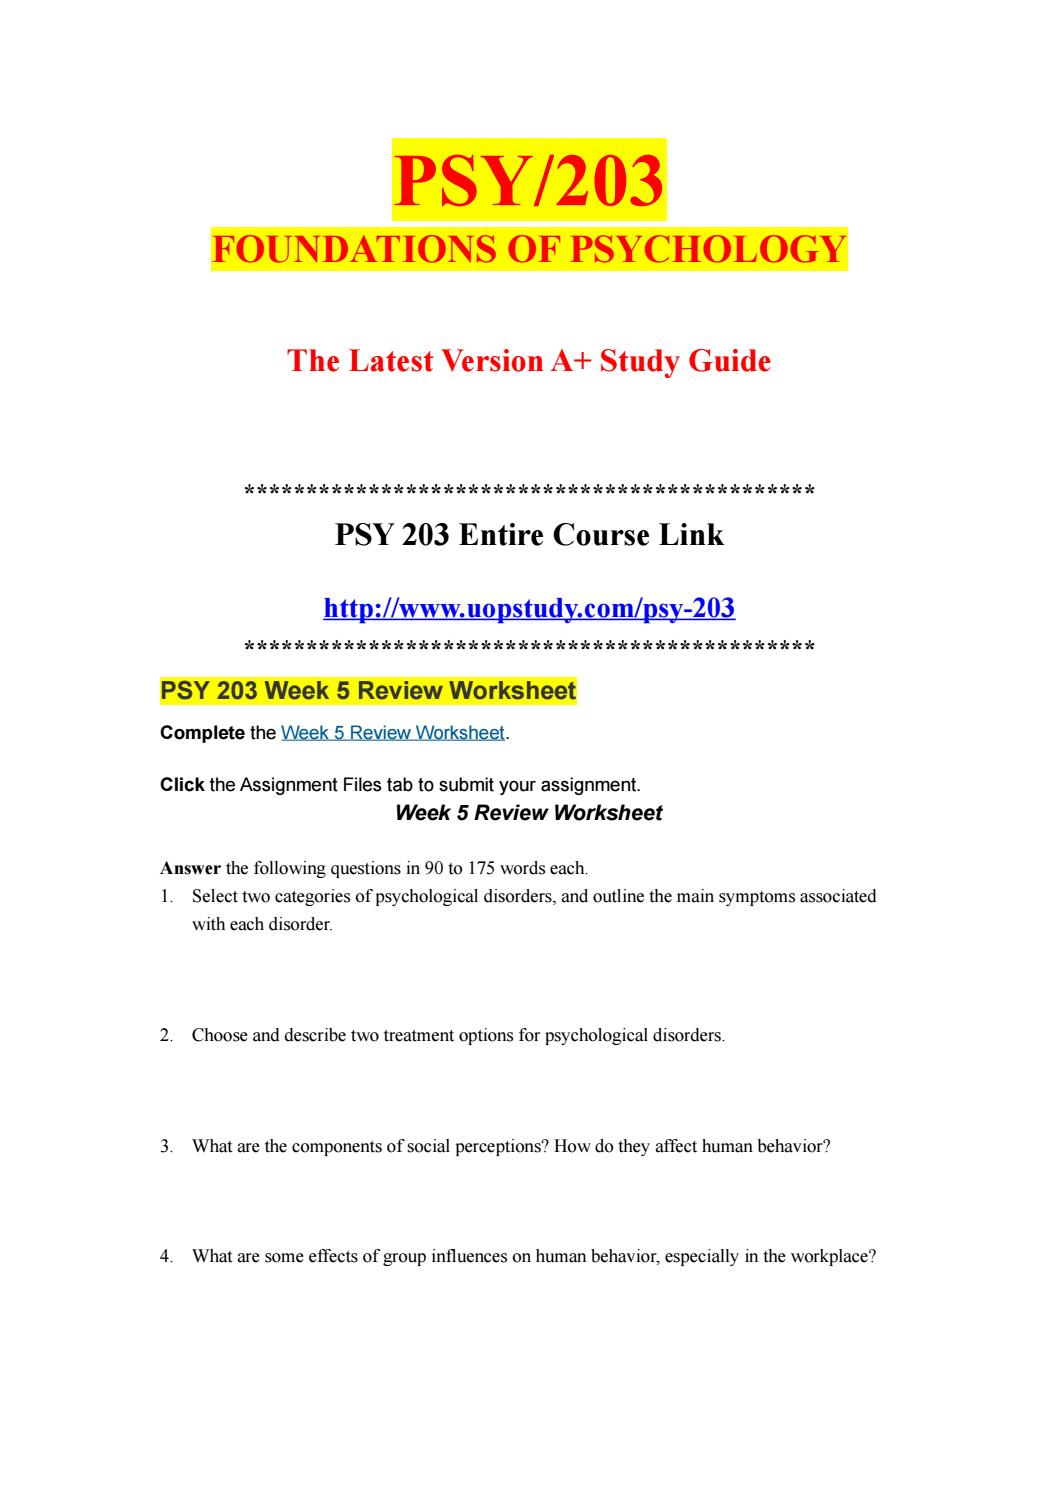 Psy 203 Week 5 Review Worksheet Uopstudy Com By Uopx008 Issuu